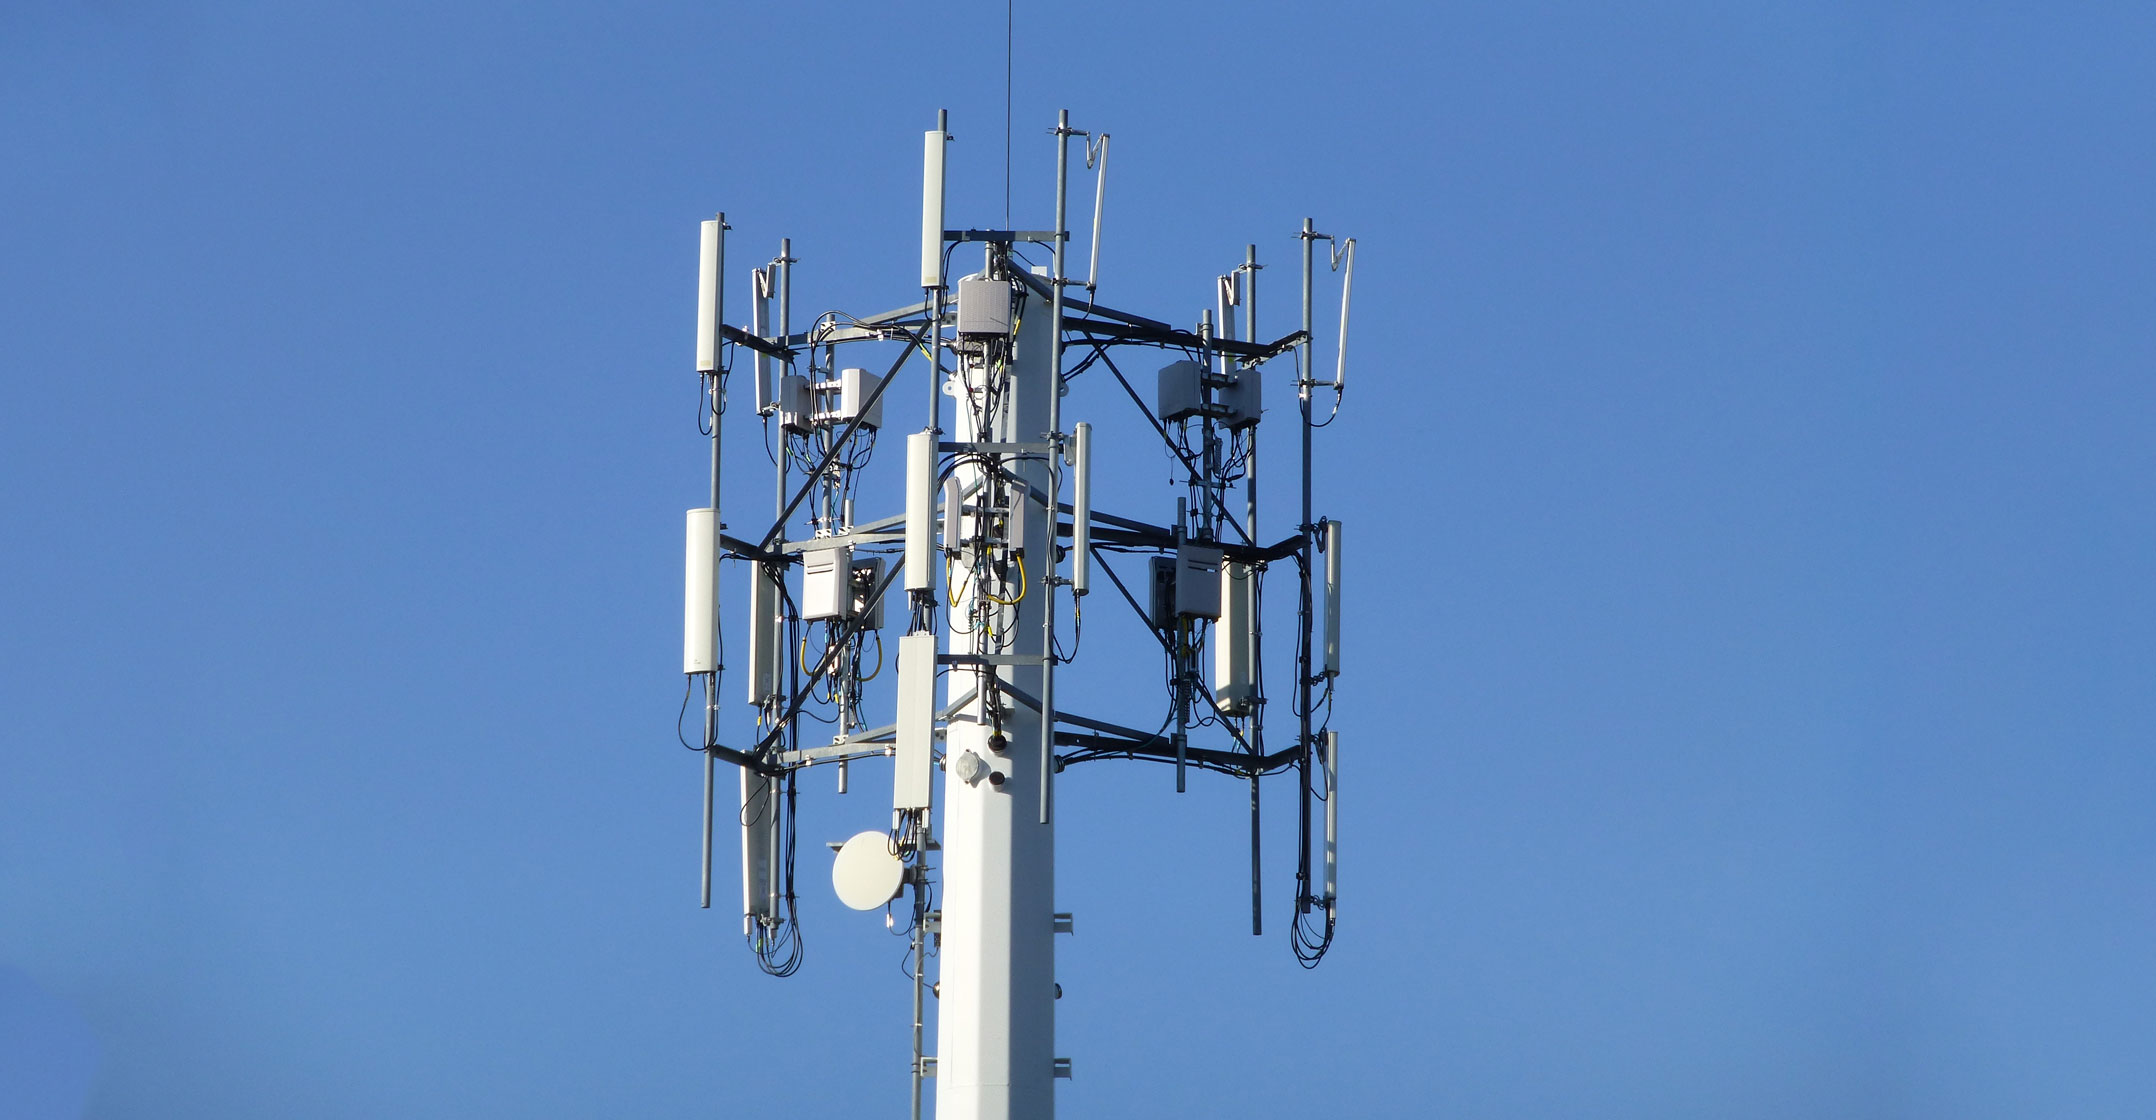 R10 5bn Plan To Make Africa S Phone Towers Green Techcentral